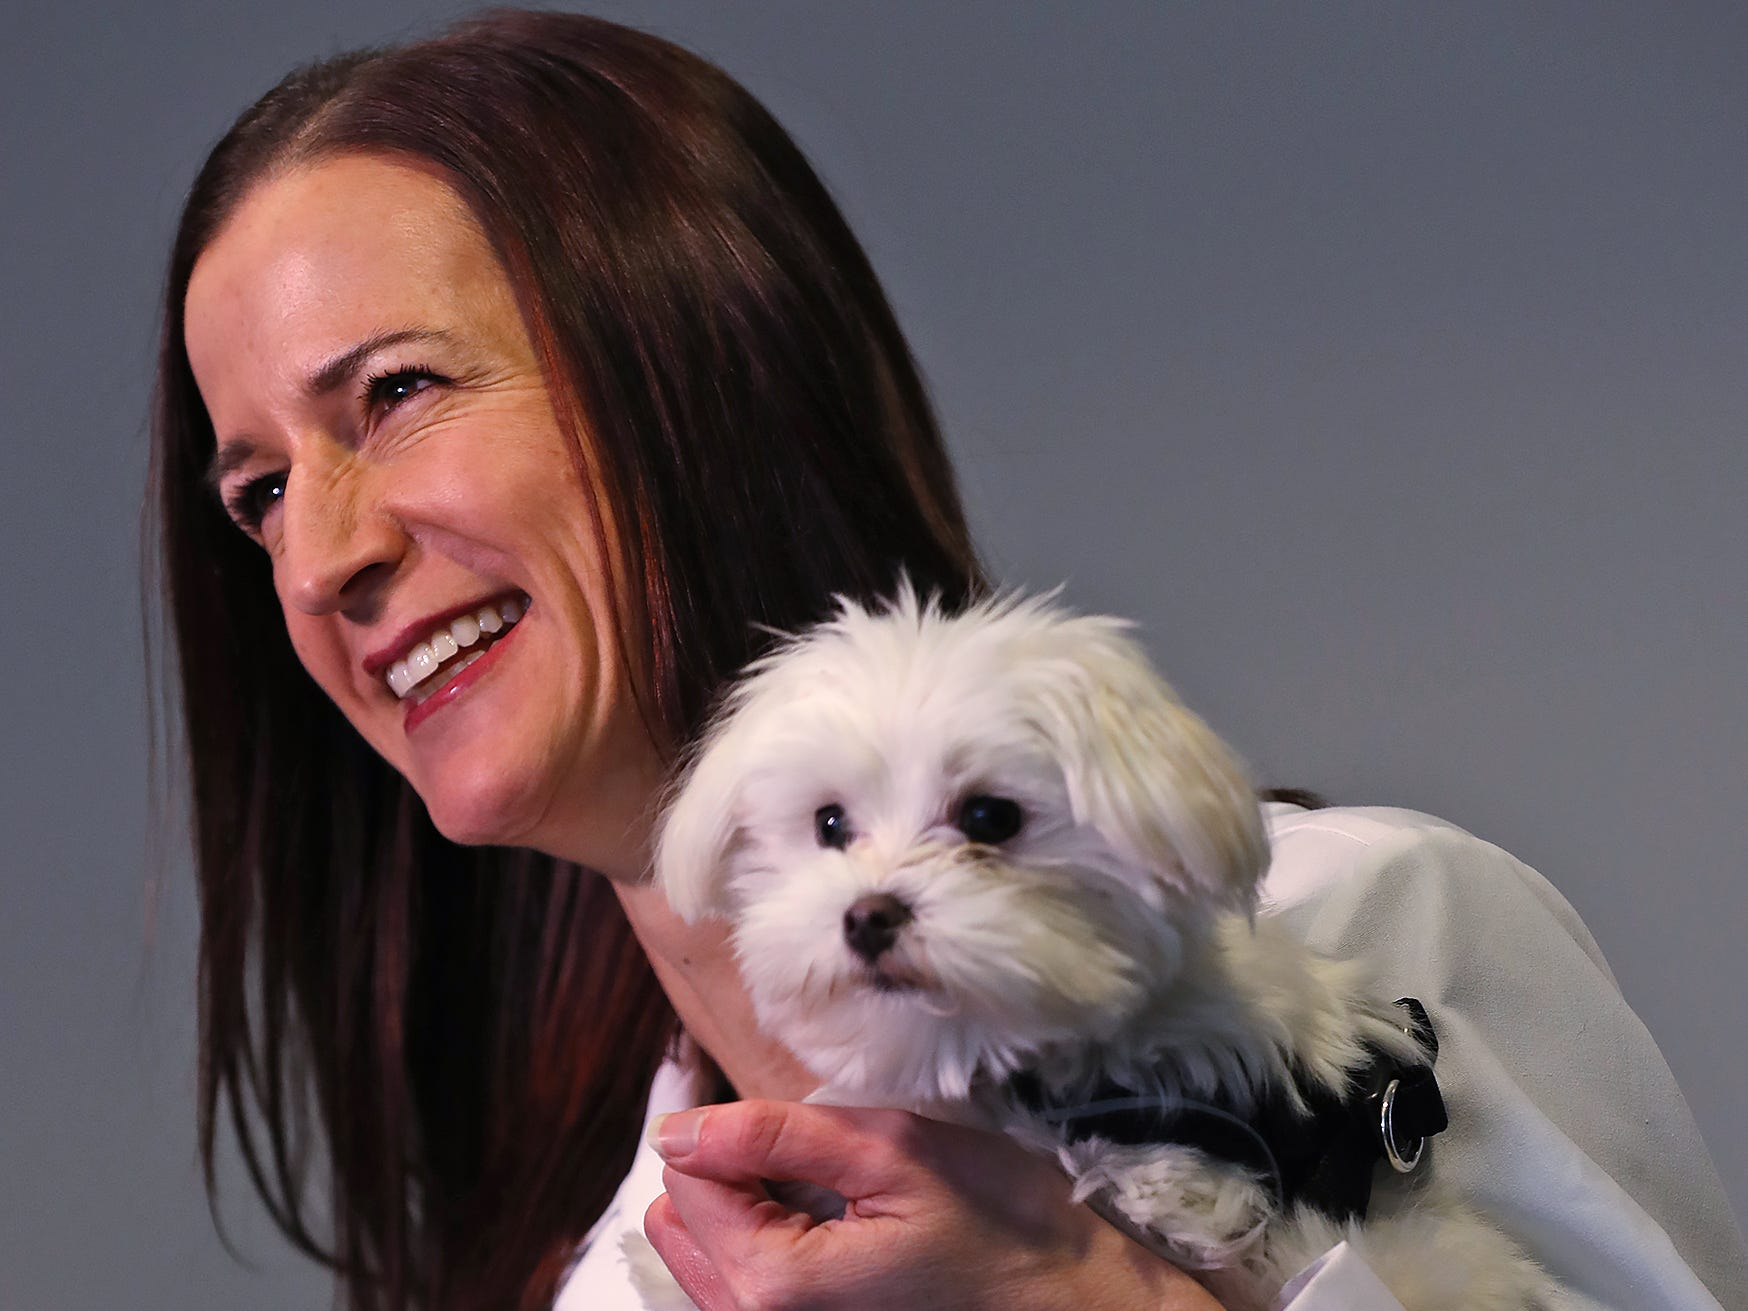 Pistachio, a Maltese-mix puppy, who is the 2019 Puppy Bowl's tiniest player, visits the Indianapolis Motor Speedway, Wednesday, Jan. 9, 2019. Dr. Tara Harris, a child abuse specialist and director of the Center of Hope at Riley Hospital for Children at IU Health, and the founder of Every Dog Counts Rescue, holds Pistachio as she is interviewed.  Pistachio is one of her rescue dogs.  He was born with a congenital defect called a liver shunt which nearly killed him.  She helped the puppy get his life-saving surgery, when he was just two pounds.  After pulling through, he made it into the Super Bowl's dog favorite, the 2019 Puppy Bowl.